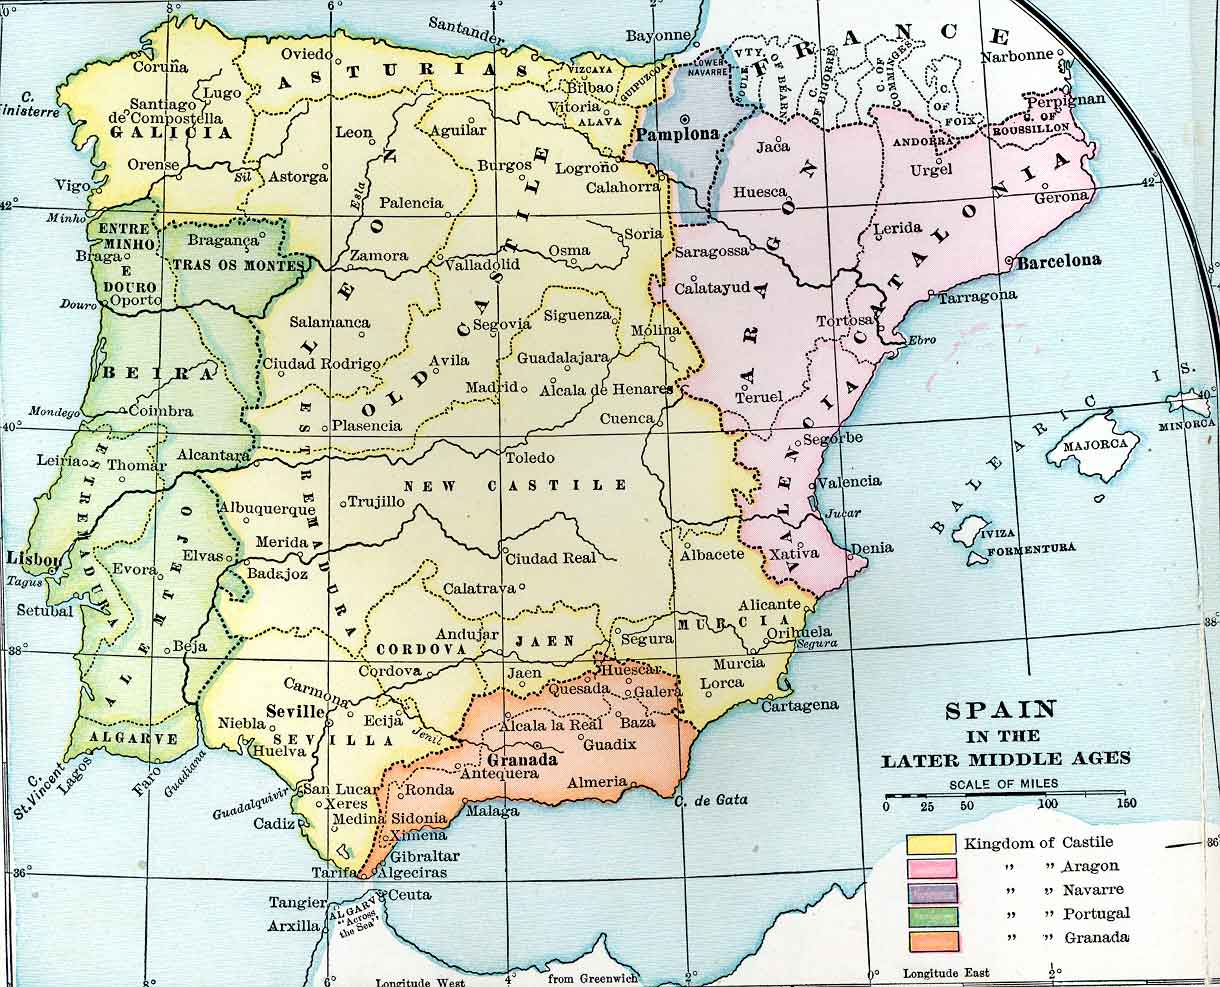 Spain in the Later Middle Ages